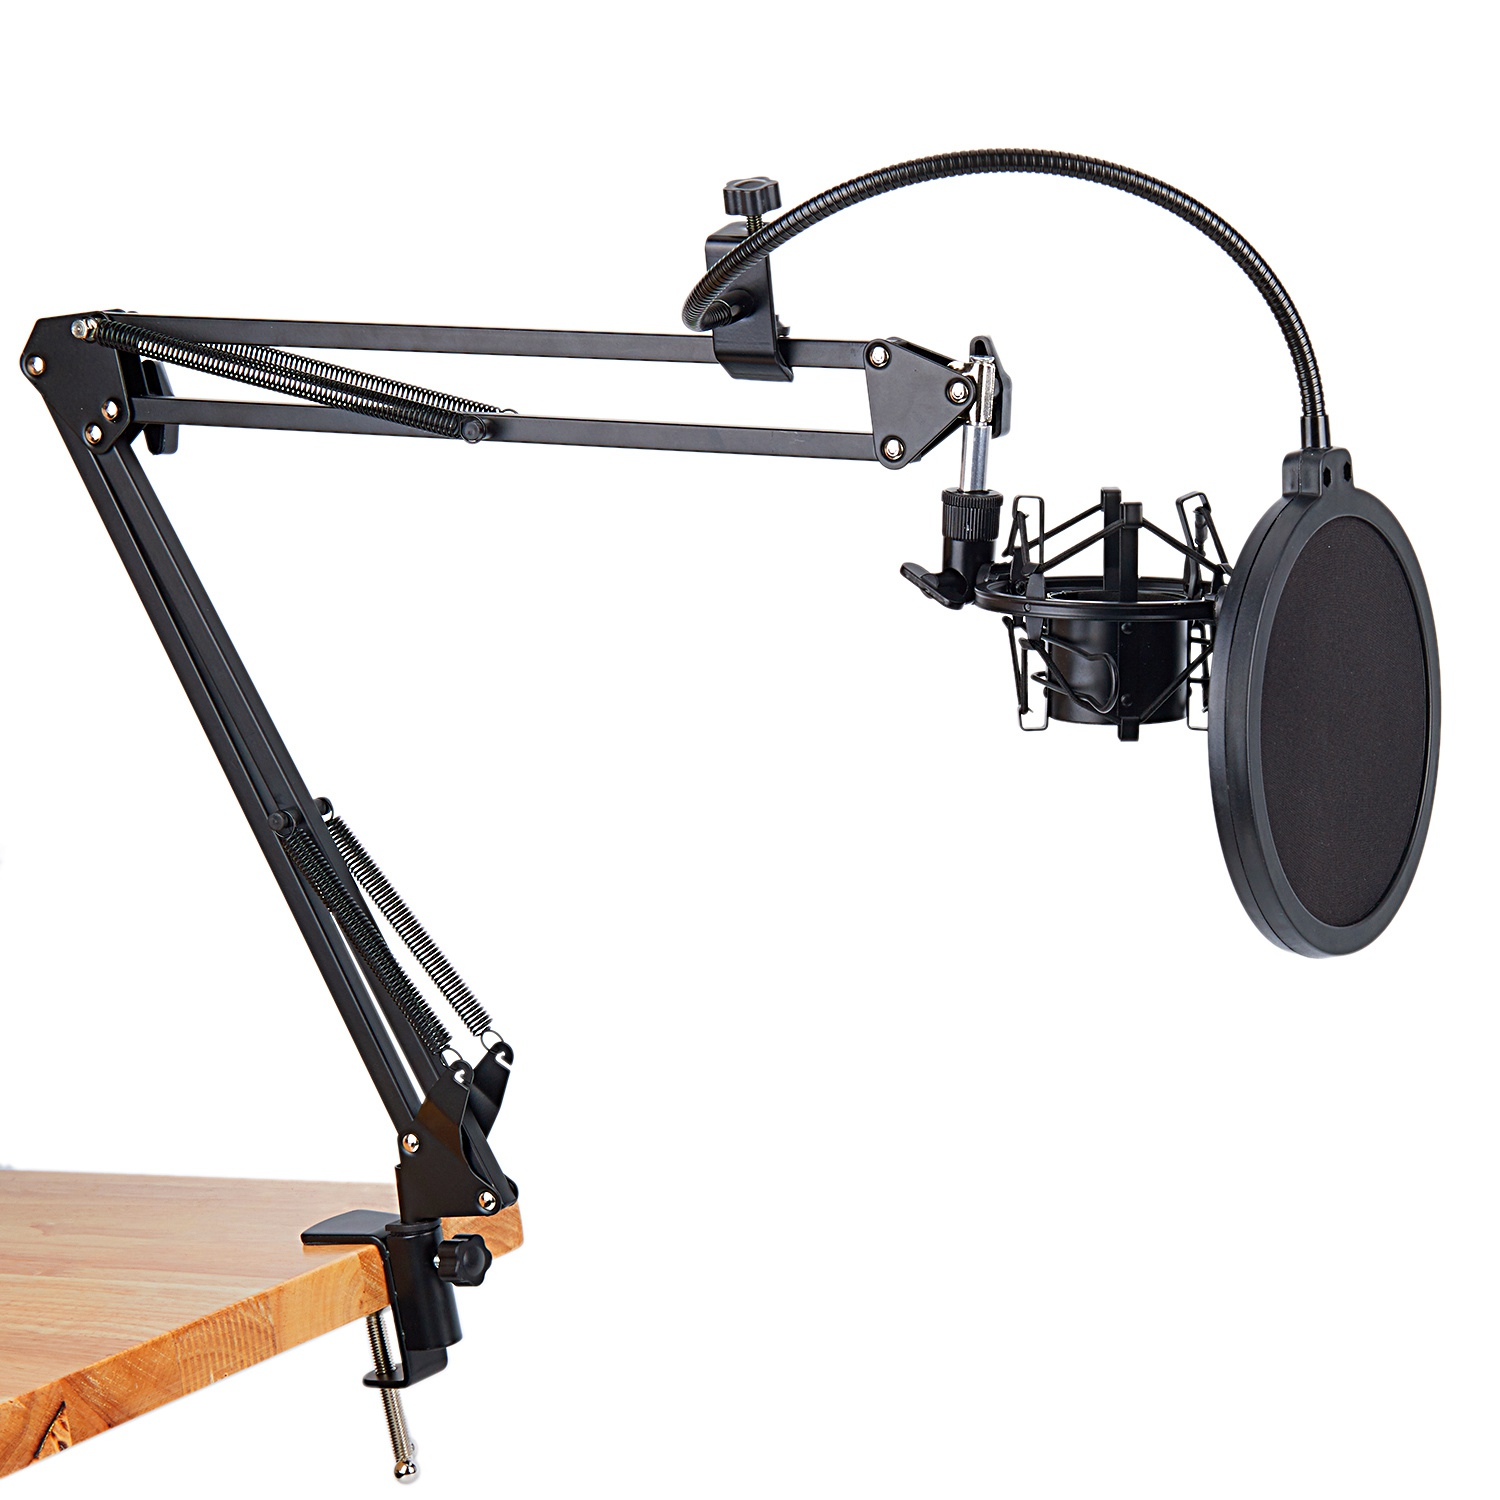 NB-35 Microphone Scissor Arm Stand and Table Mounting Clamp amp NW Filter Windscreen Shield  amp  Metal Mount Kit